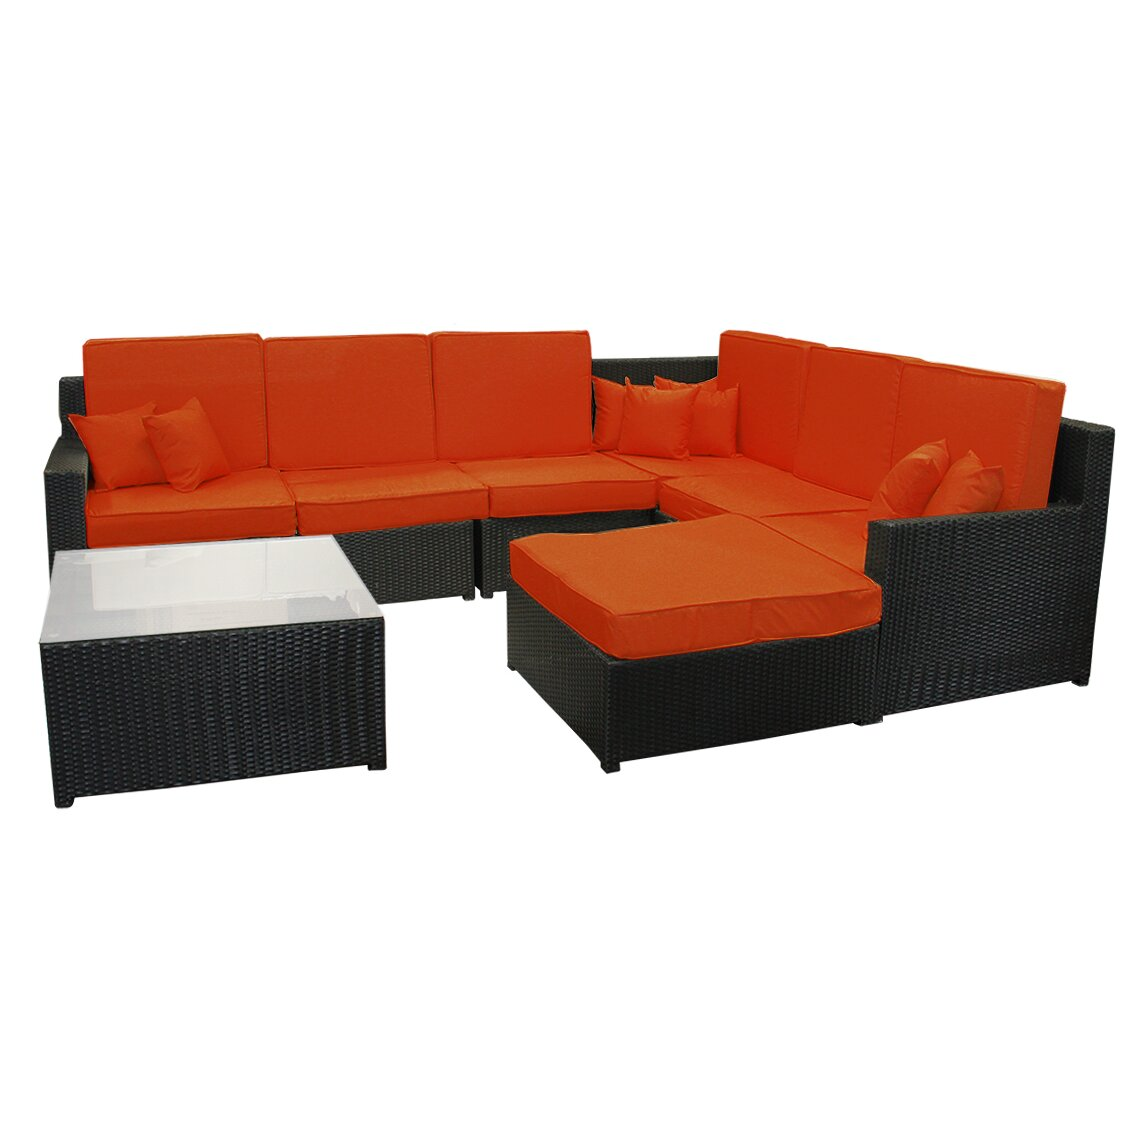 Northlight 8 Piece Resin Wicker Outdoor Furniture Sectional Sofa Table and Ot